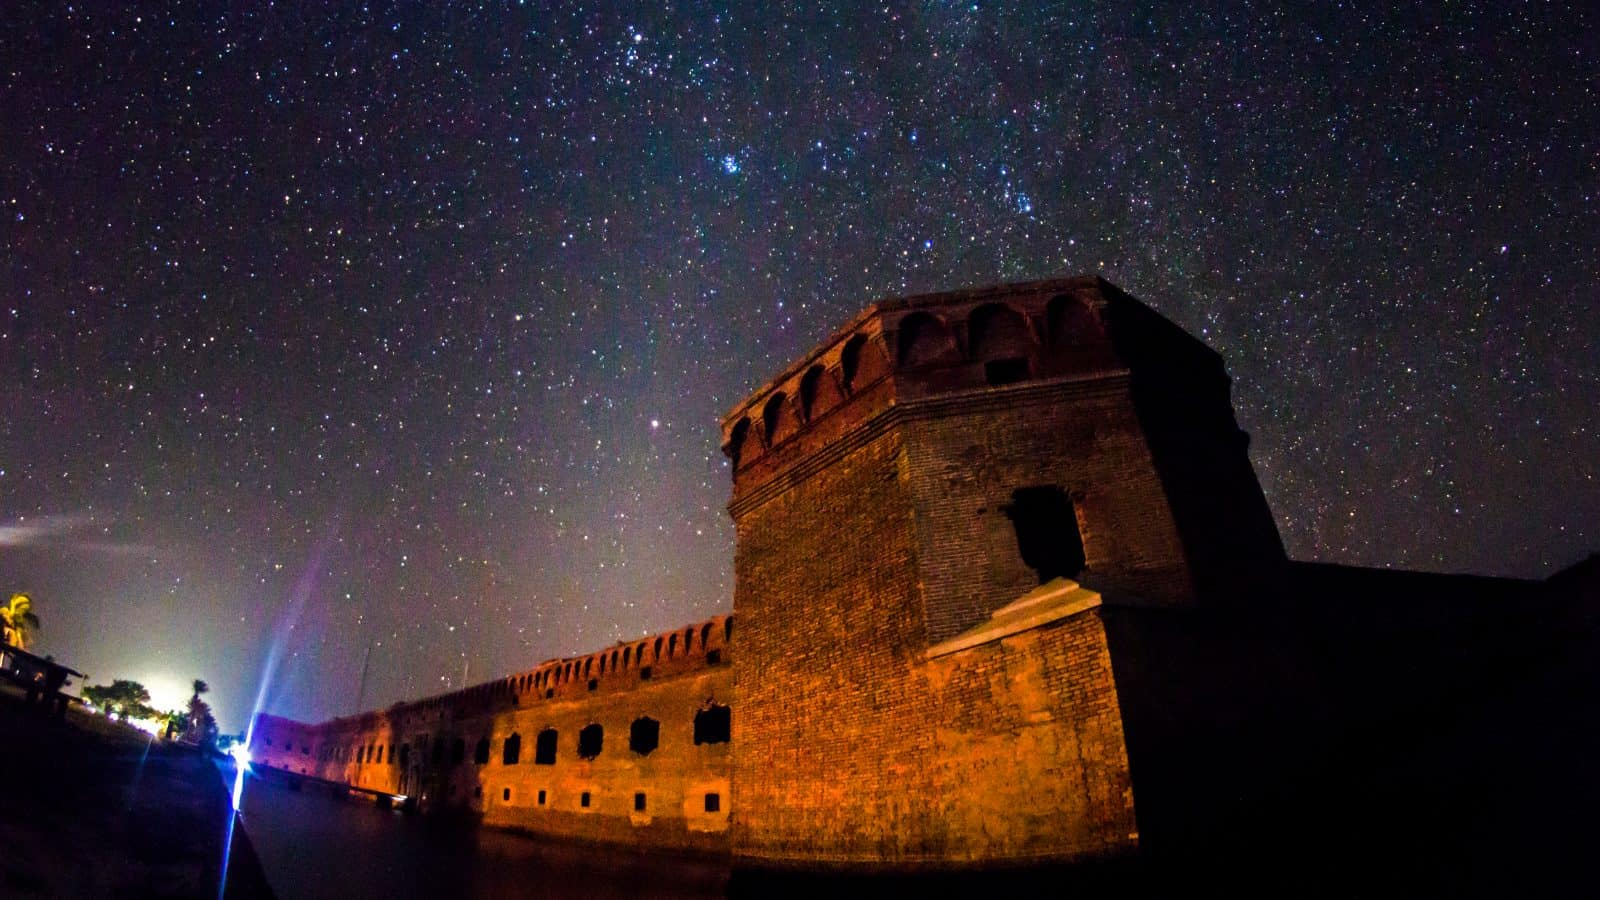 The stars are out in full force in the dark sky above Dry Tortugas National Park.